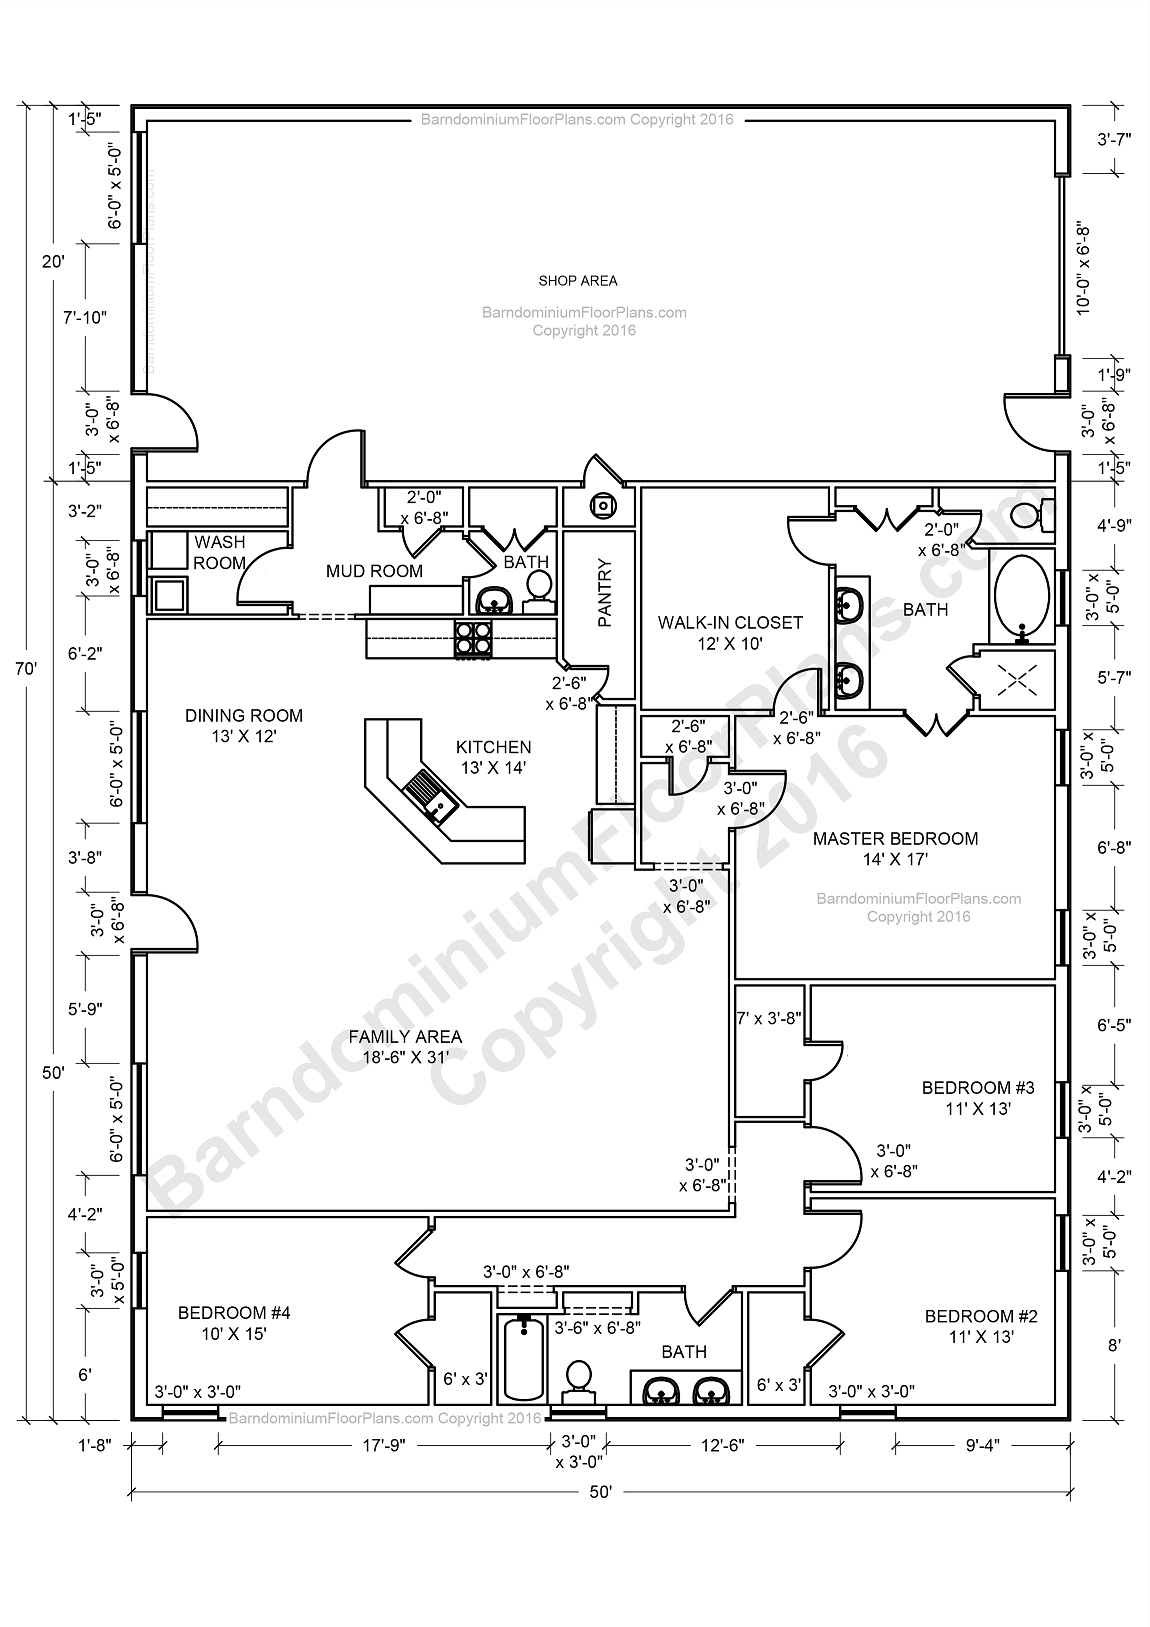 Barndominium floor plans barndominium floor plans 1 800 for View floor plans for metal homes